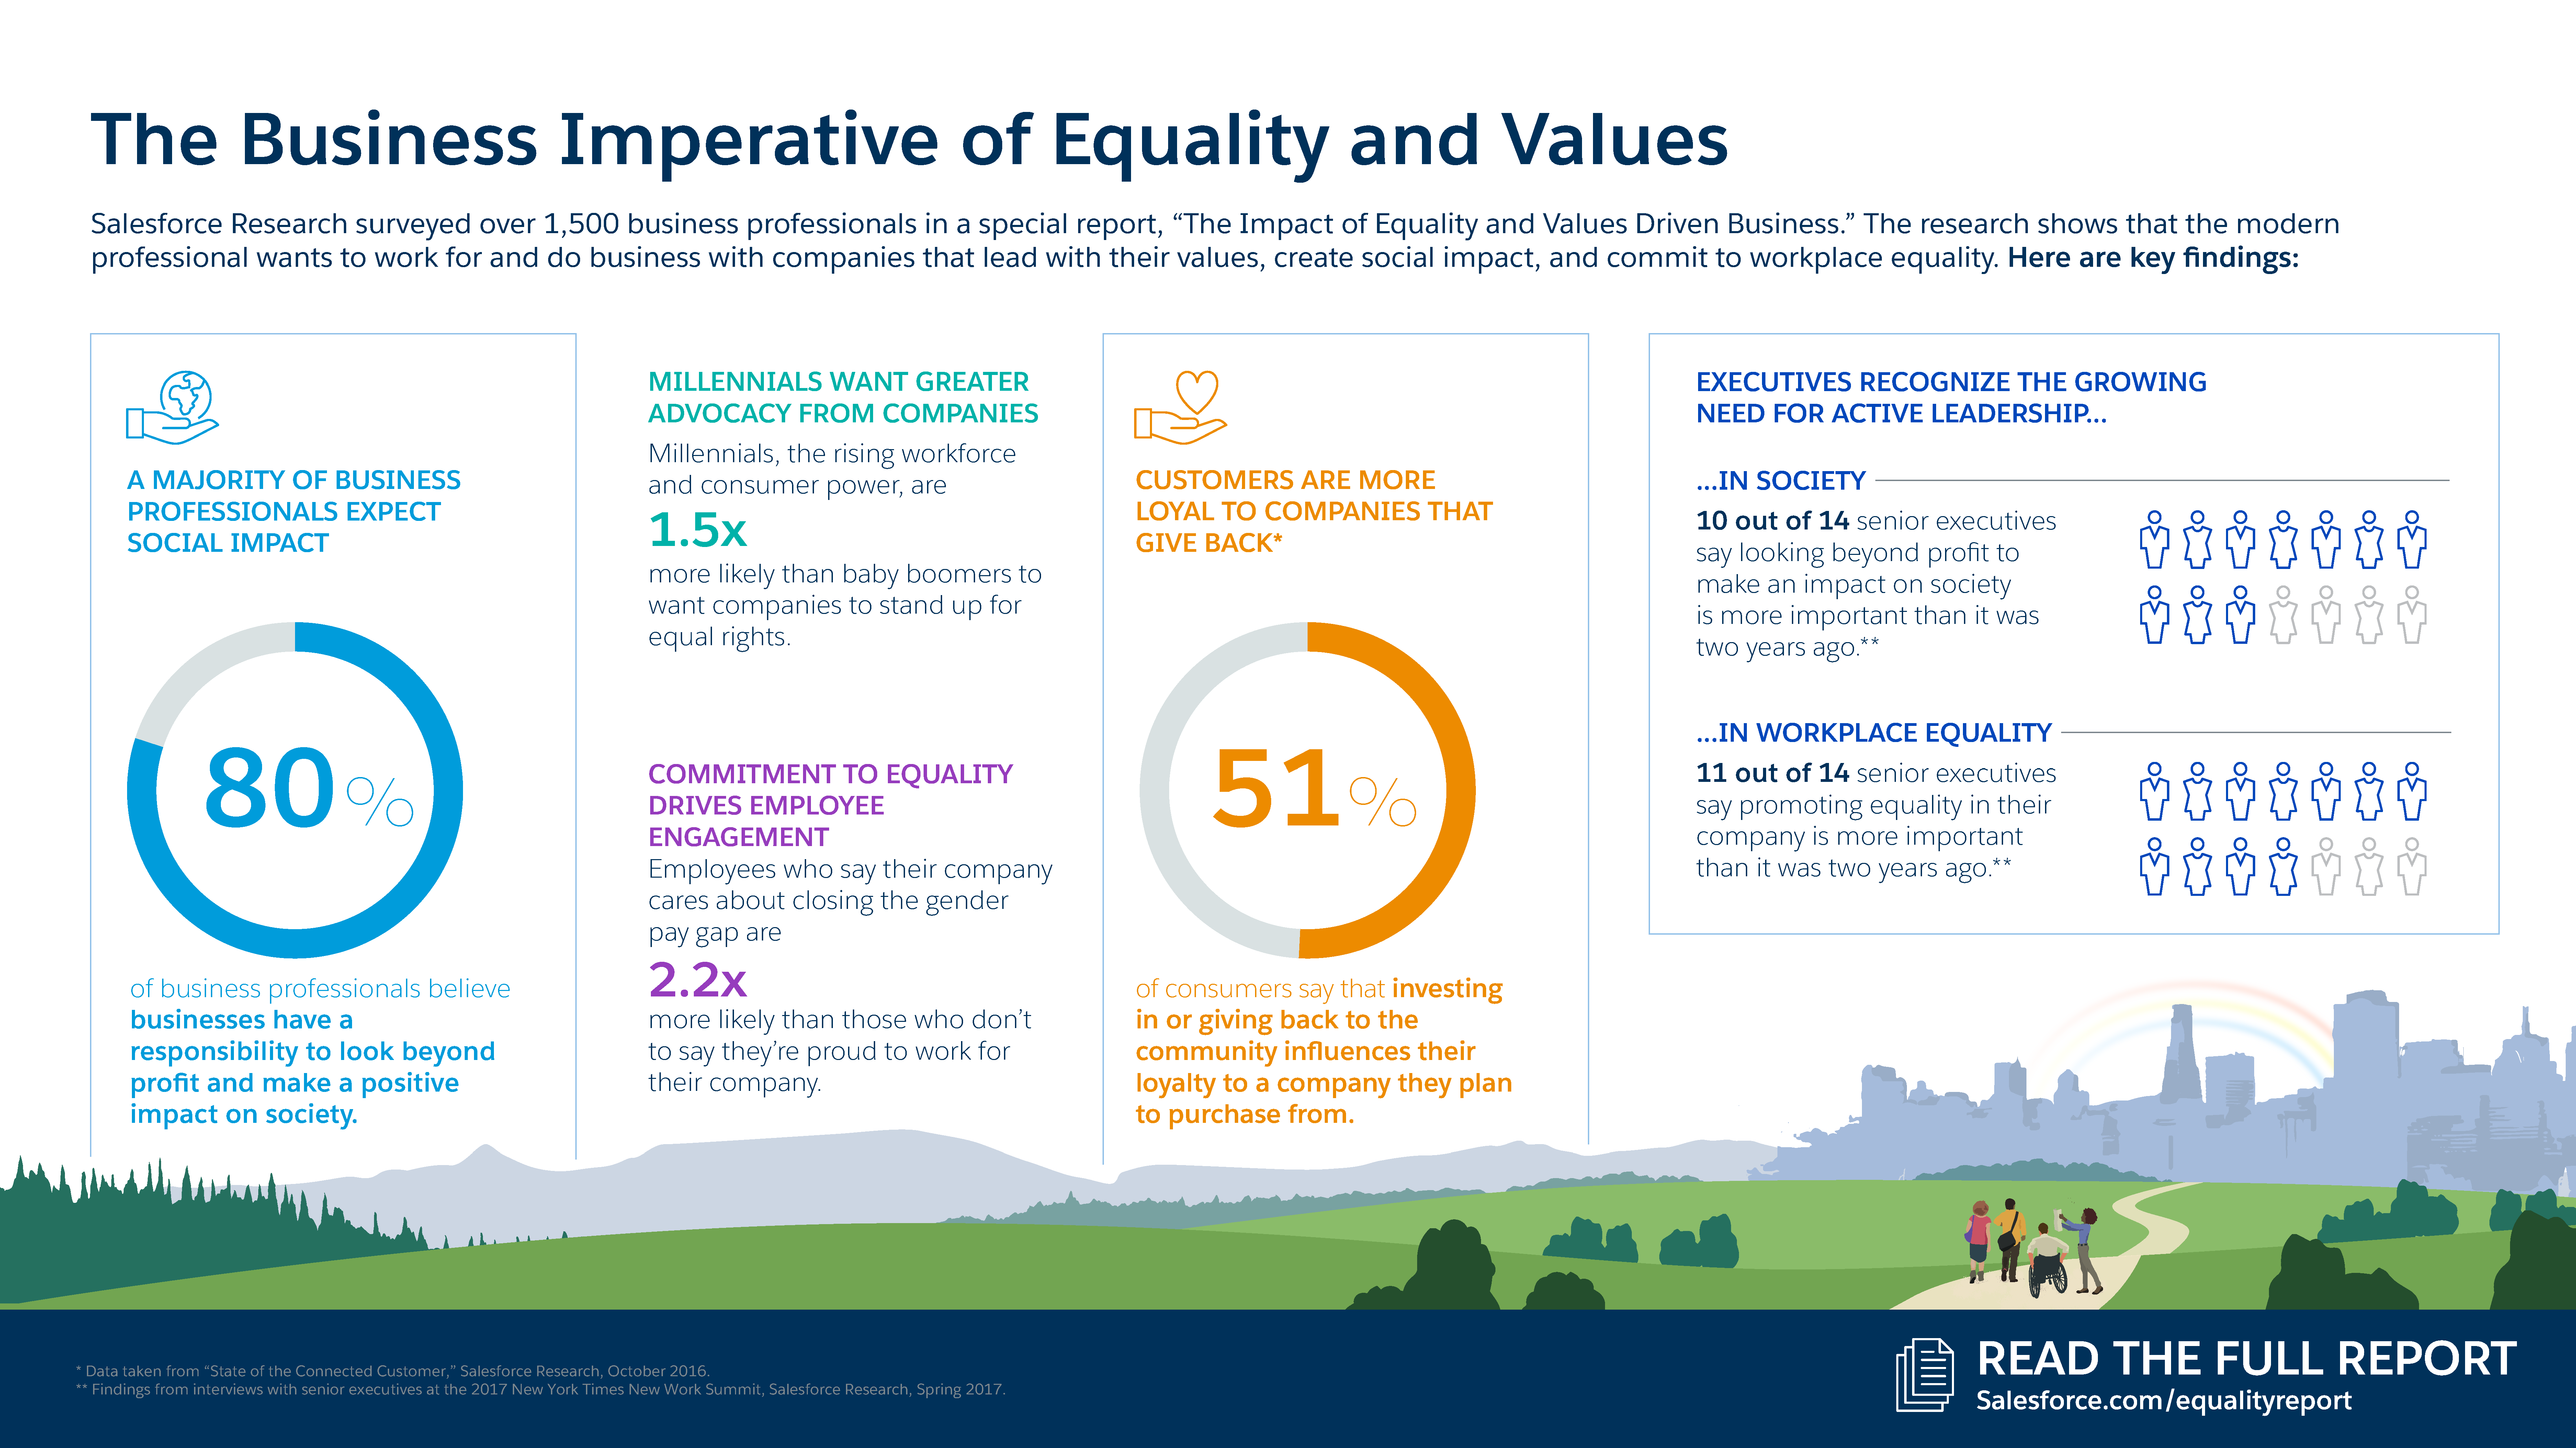 New Research: How Leading with Equality and Values Impacts